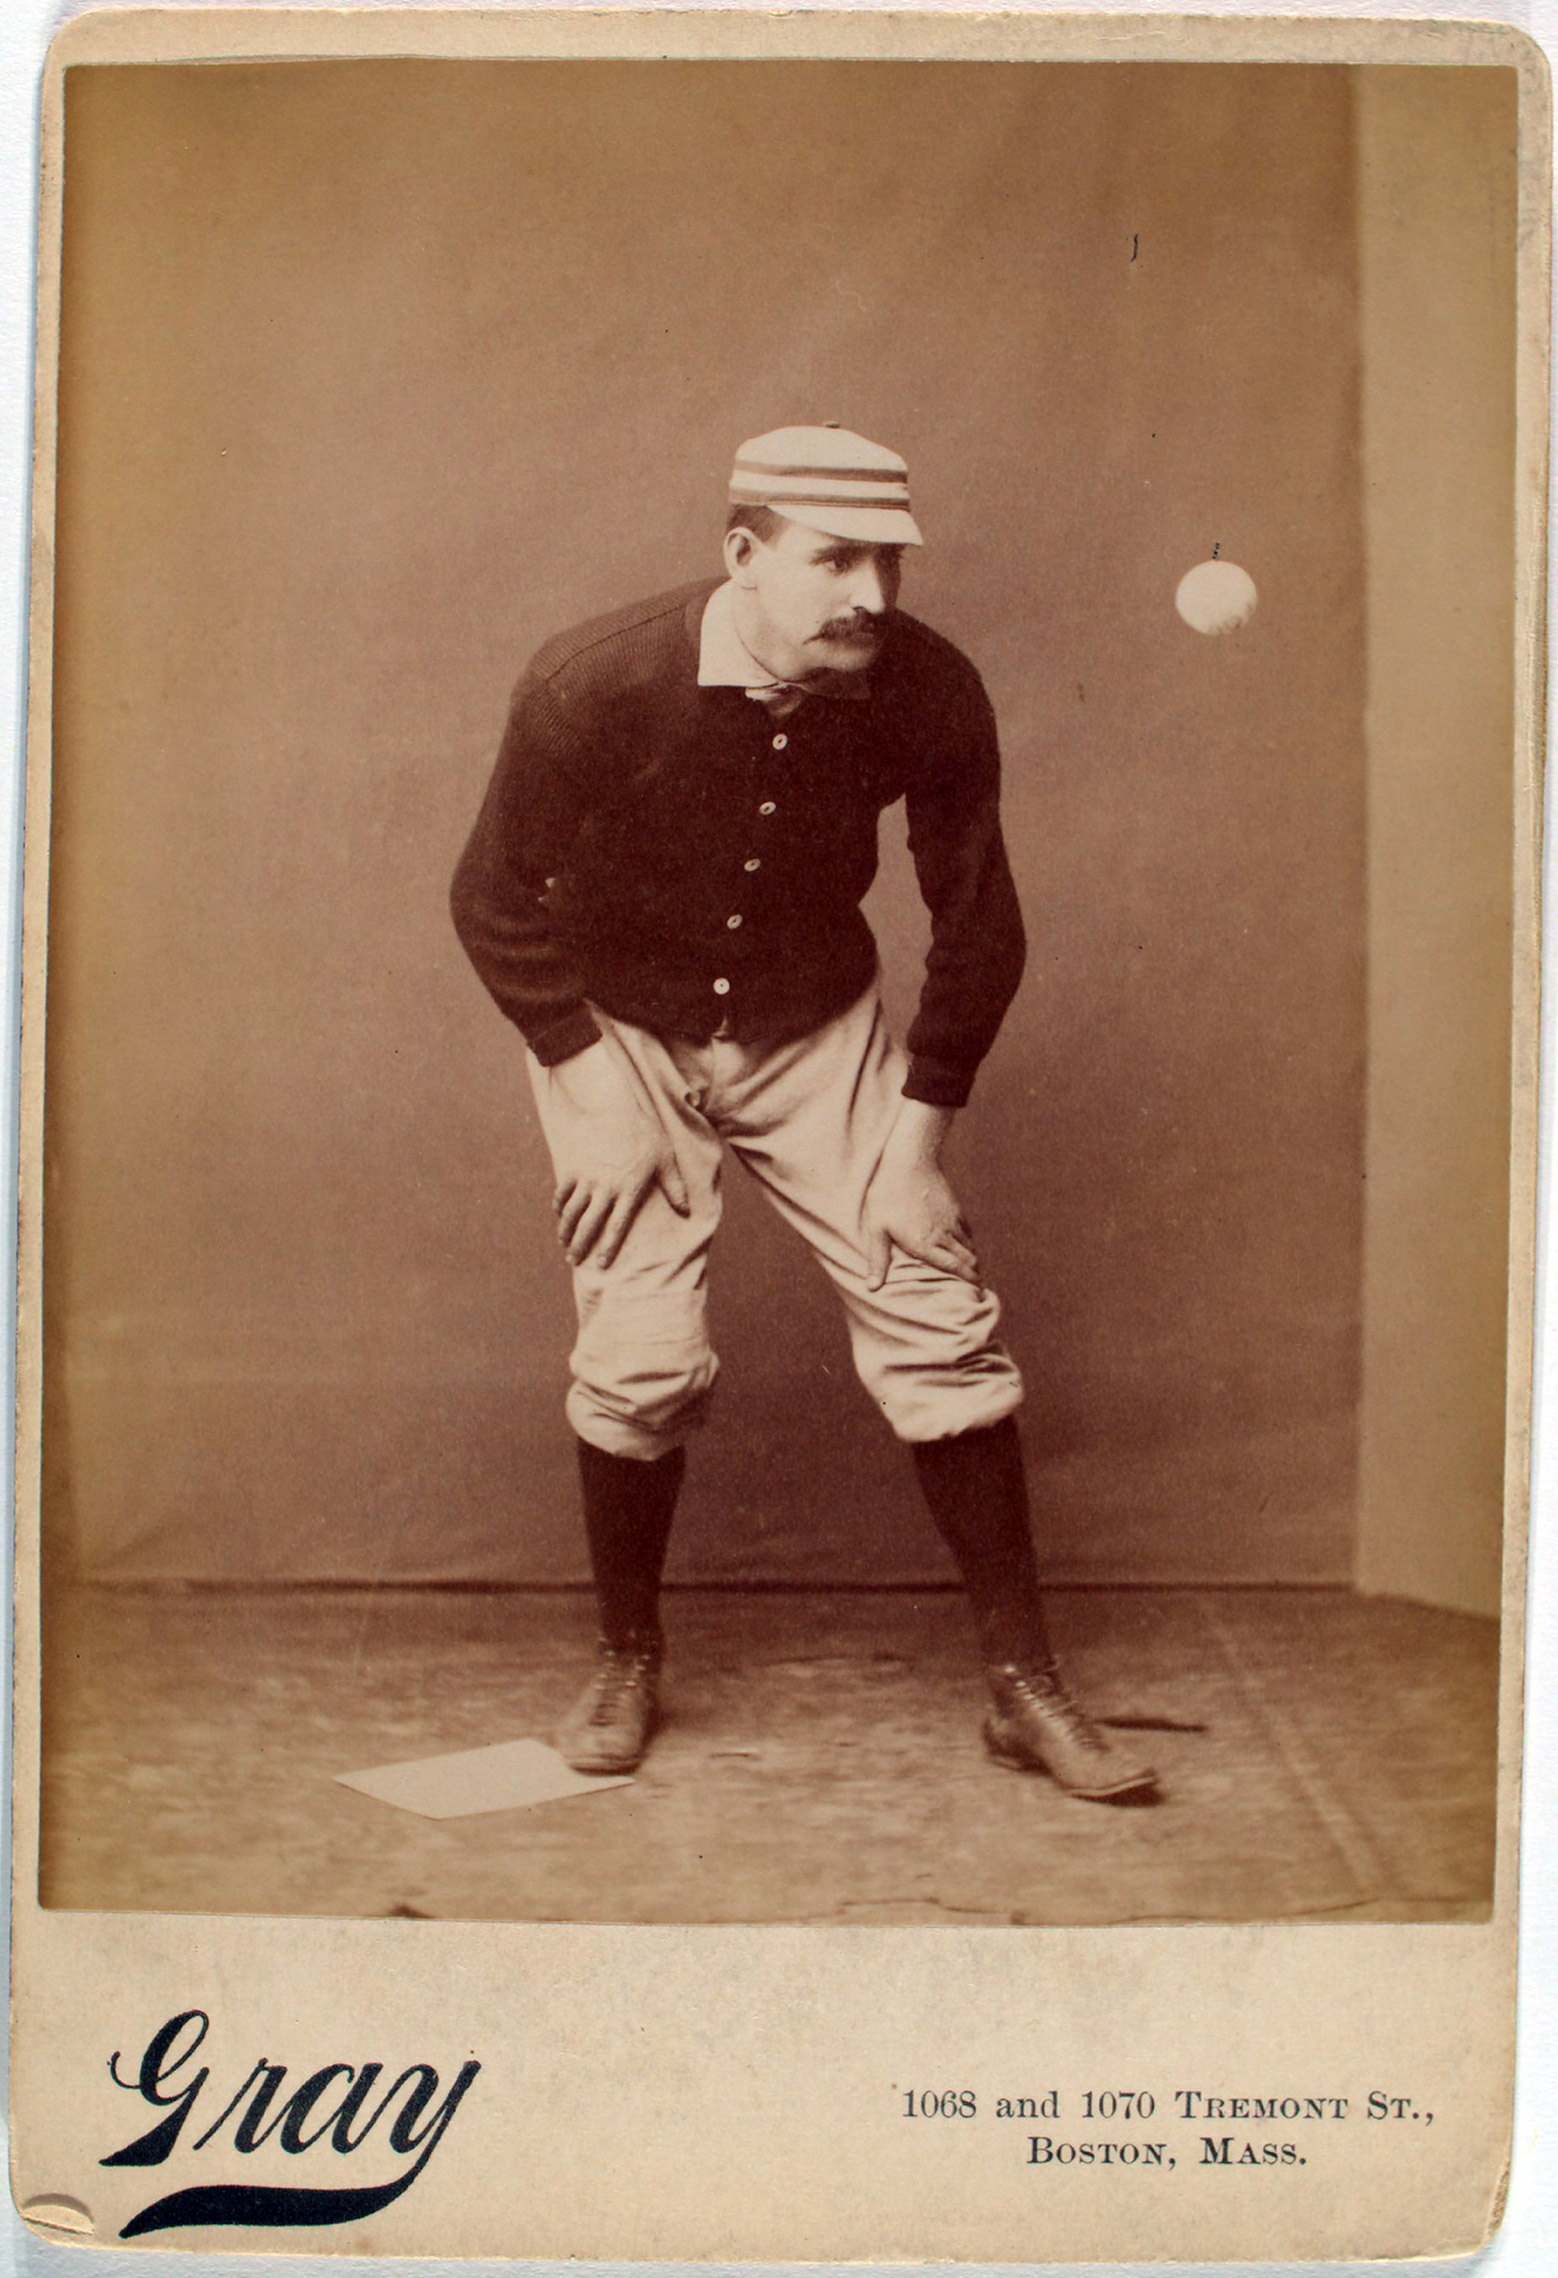 Joe Mulvey, baseball infielder in Boston. From the A. G. Spalding Baseball Collection.